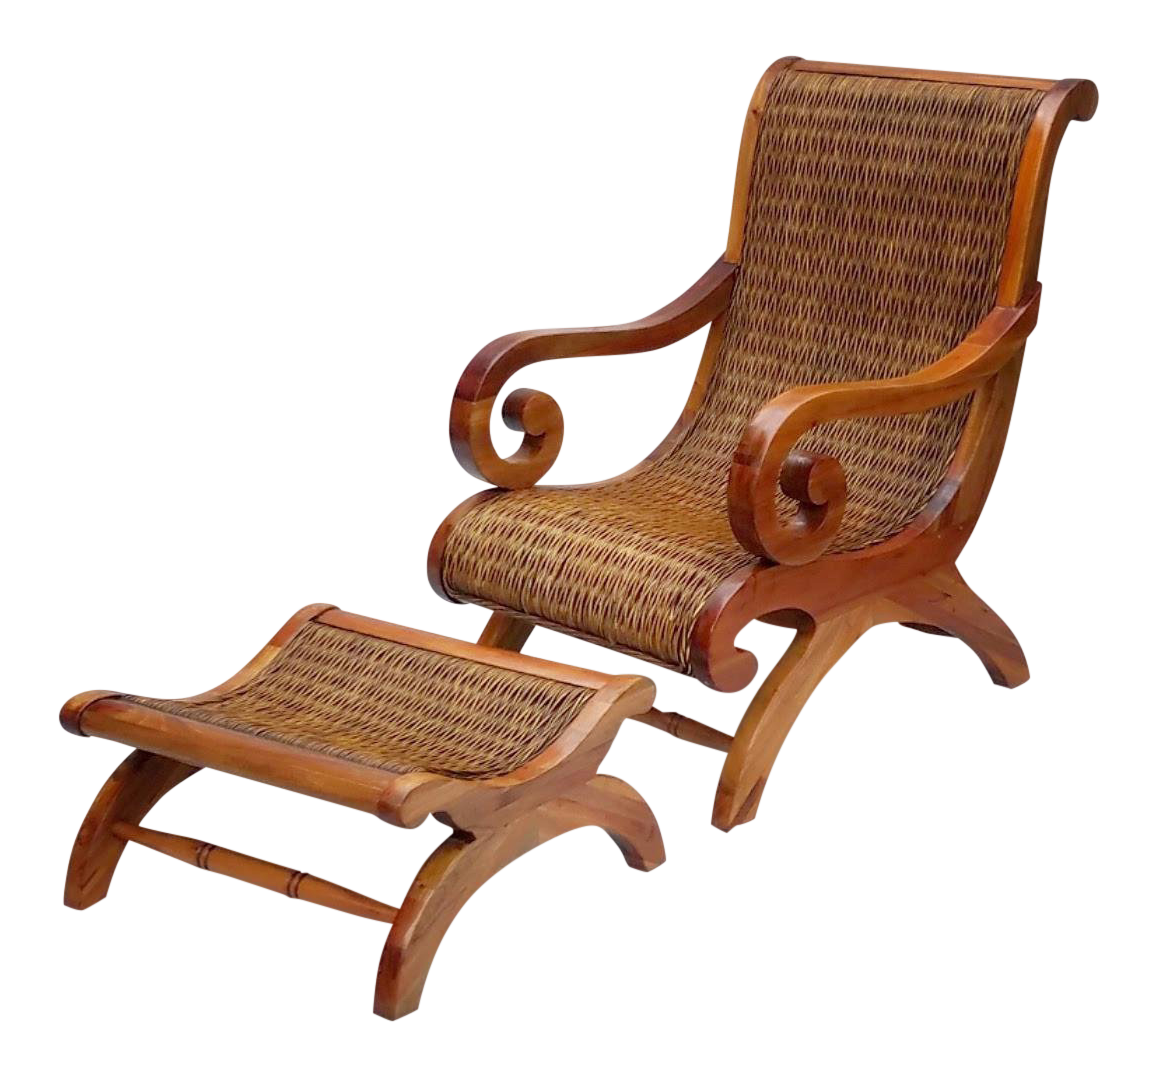 1960u0027s Vintage West Indies British Colonial Style Teak u0026 Cane Plantation Chair u0026 Ottoman | Chairish  sc 1 st  Chairish & 1960u0027s Vintage West Indies British Colonial Style Teak u0026 Cane ...